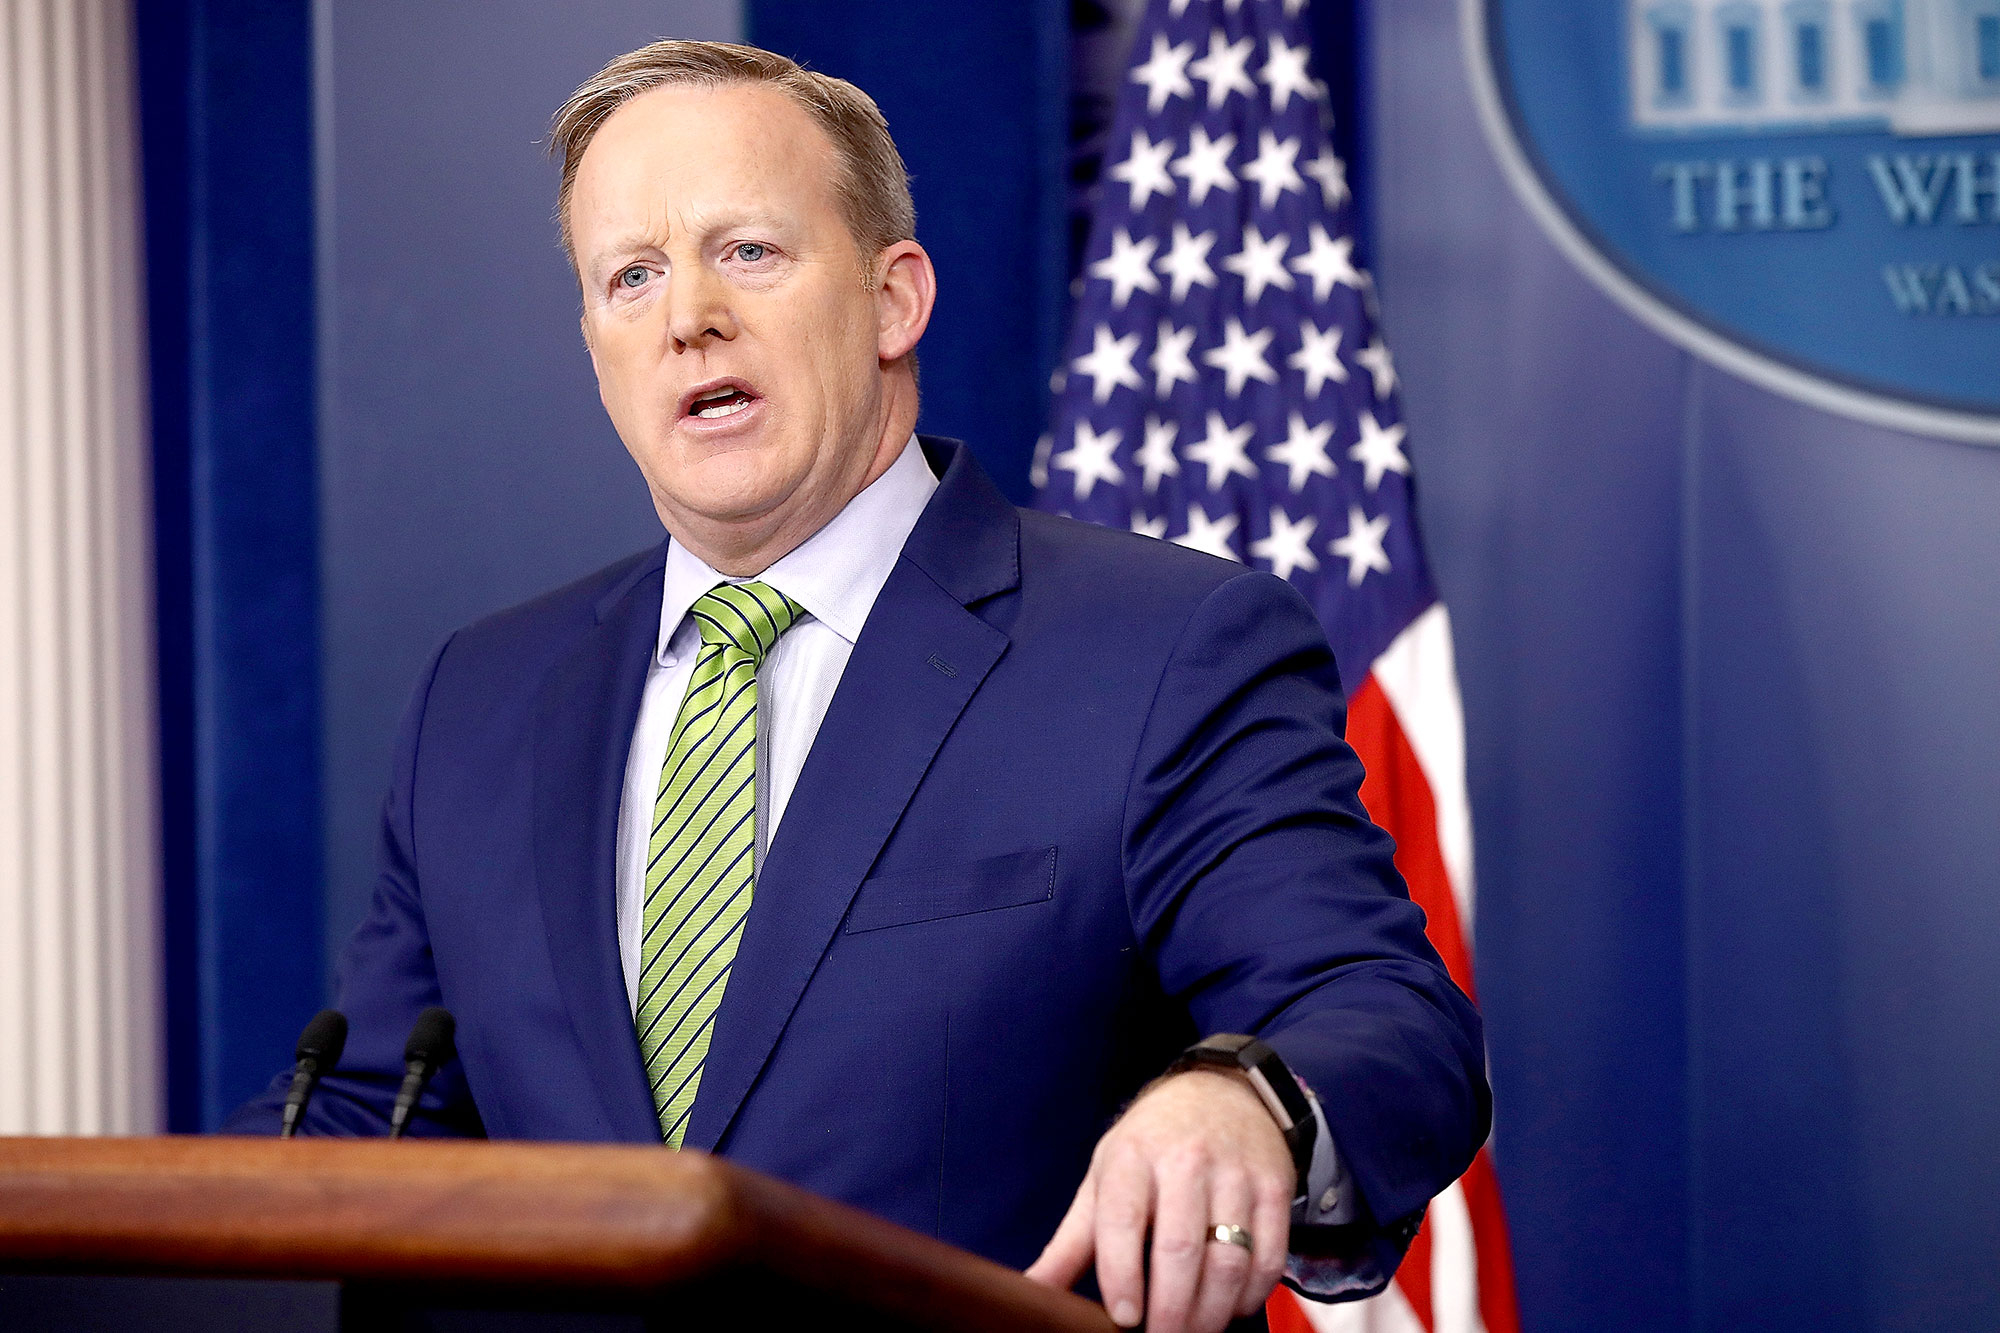 White House Press Secretary Sean Spicer answers questions in the White House briefing room February 2, 2017 in Washington, DC.